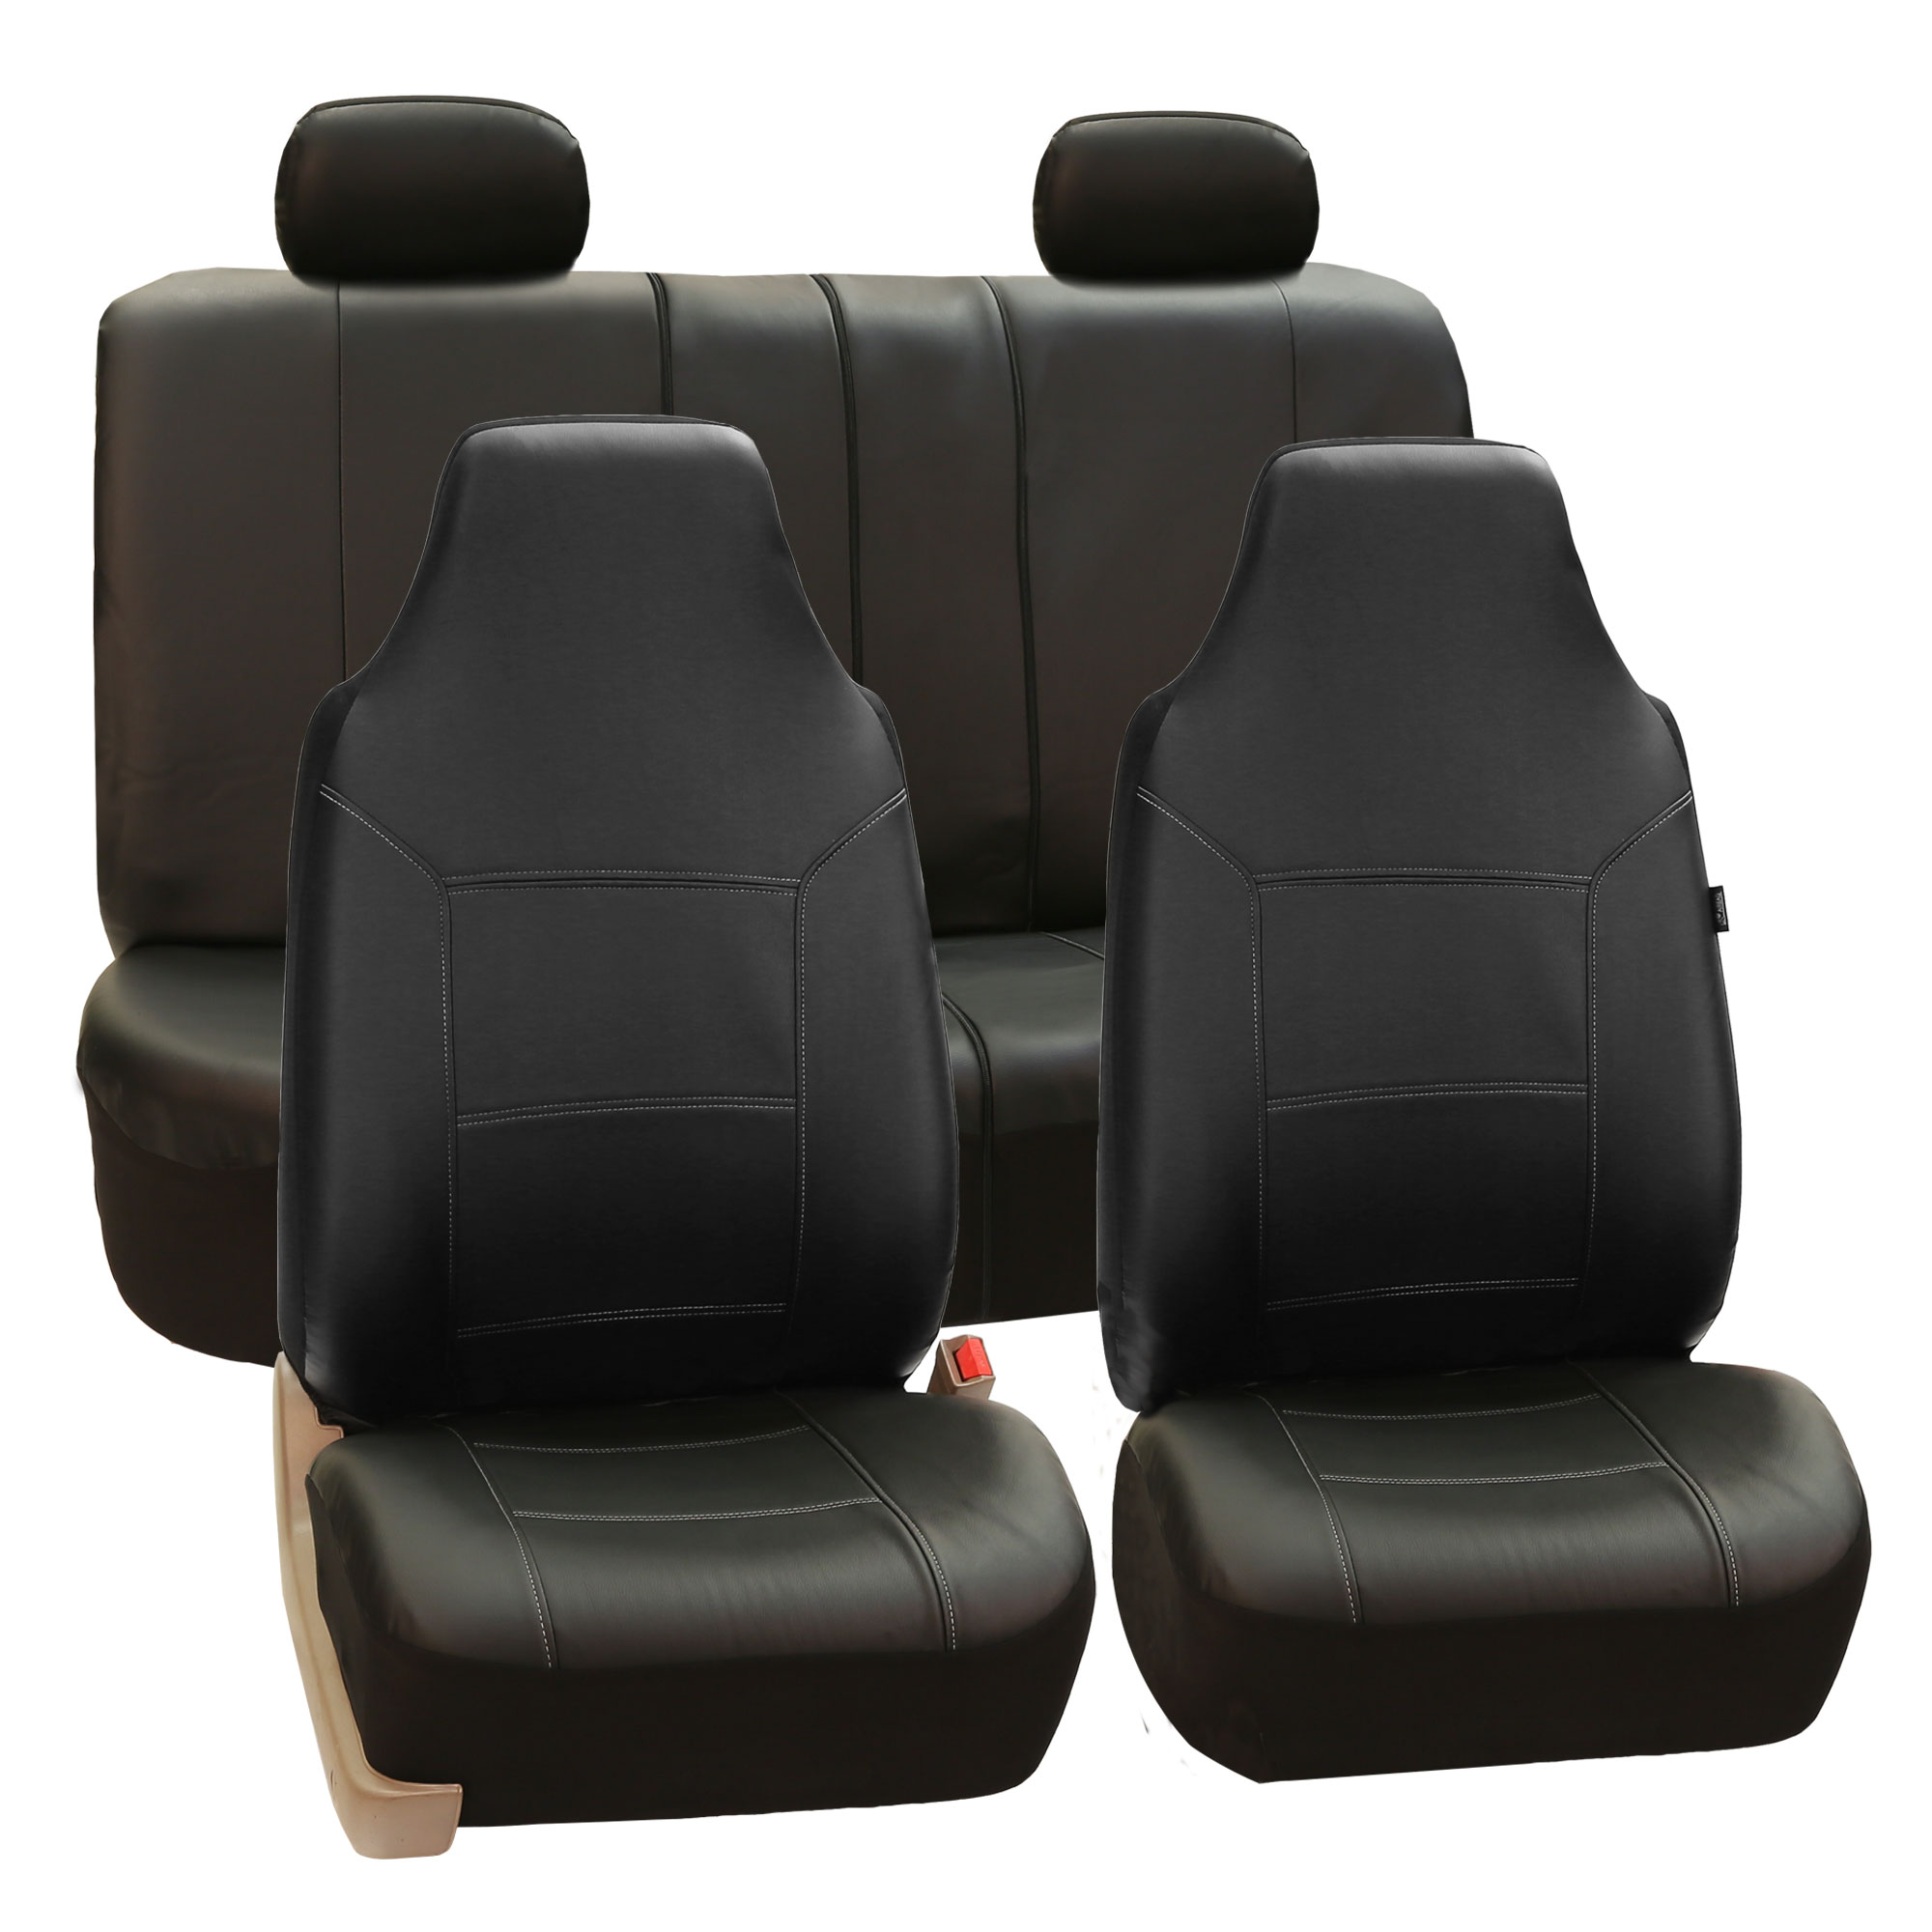 FH Group Royal PU Leather Full Set Airbag Compatible and Split Bench Car Seat Covers, Black